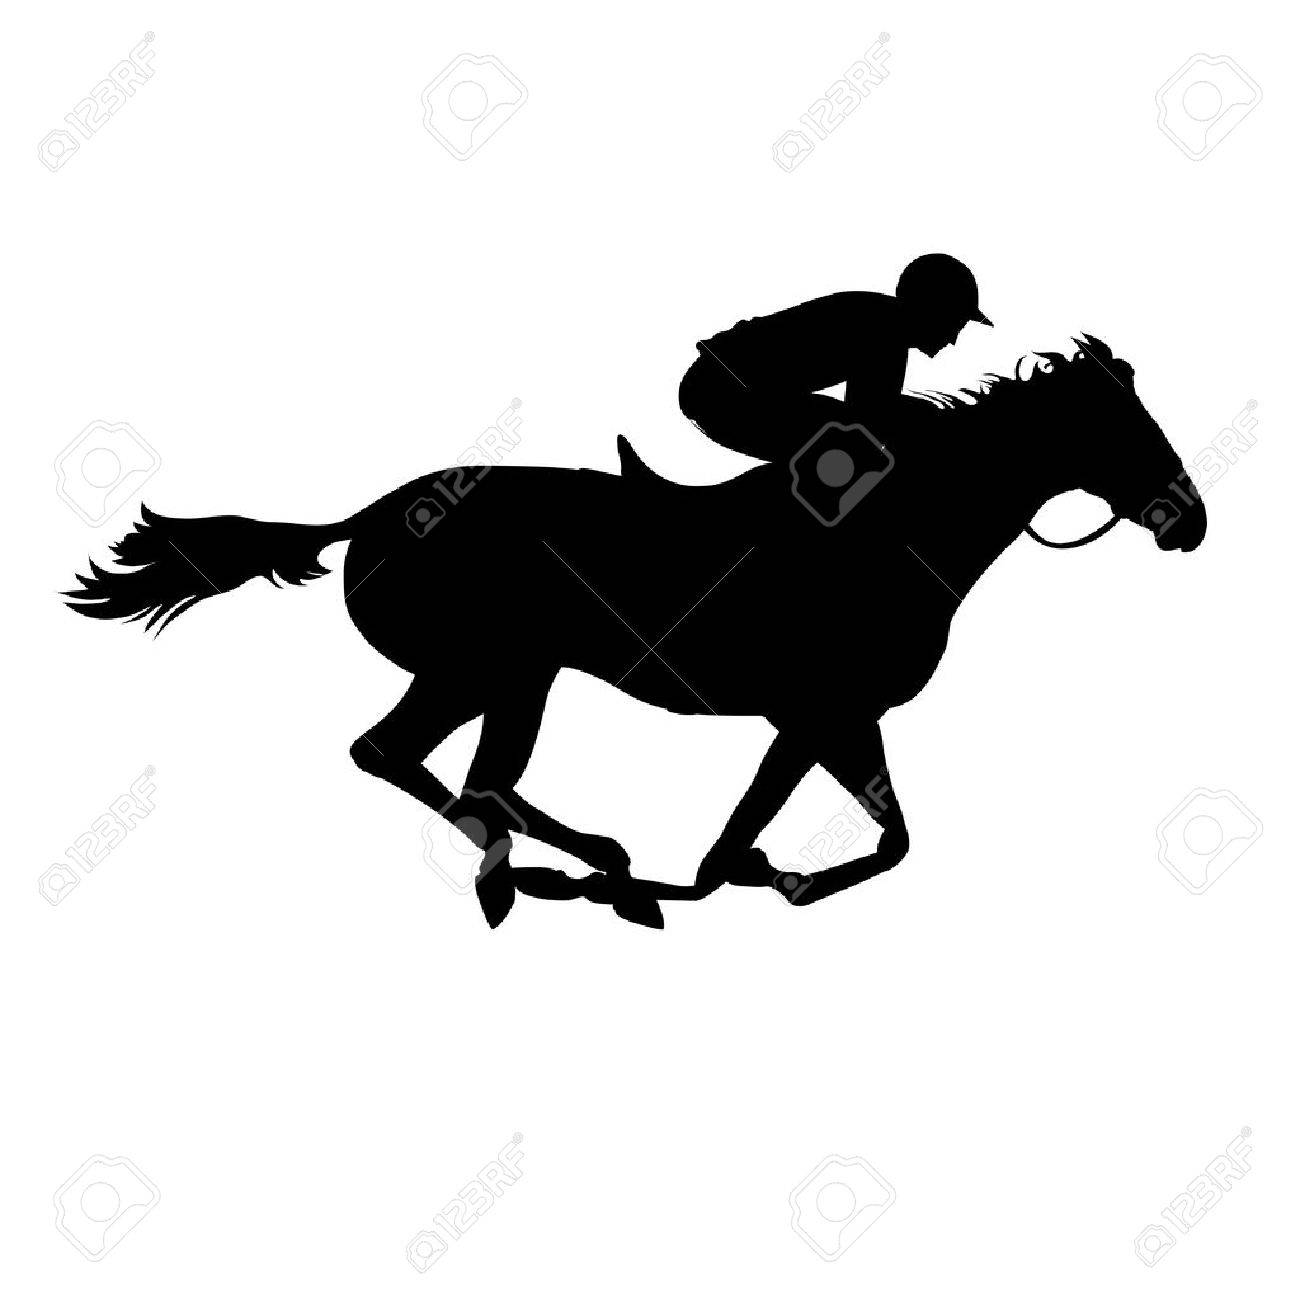 Horse Race Derby Equestrian Sport Silhouette Of Racing Horse Royalty Free Cliparts Vectors And Stock Illustration Image 40256659